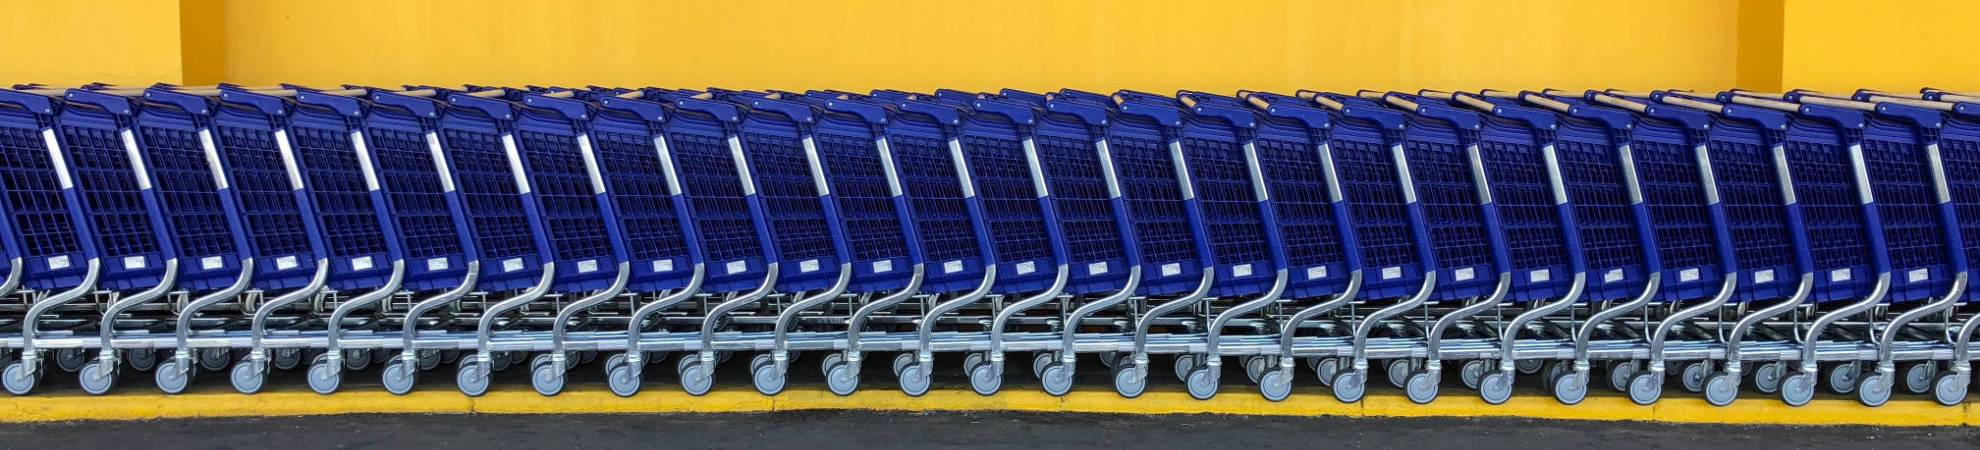 Blog hero image for the post titled: How I heard about Shopping Cart Stopper